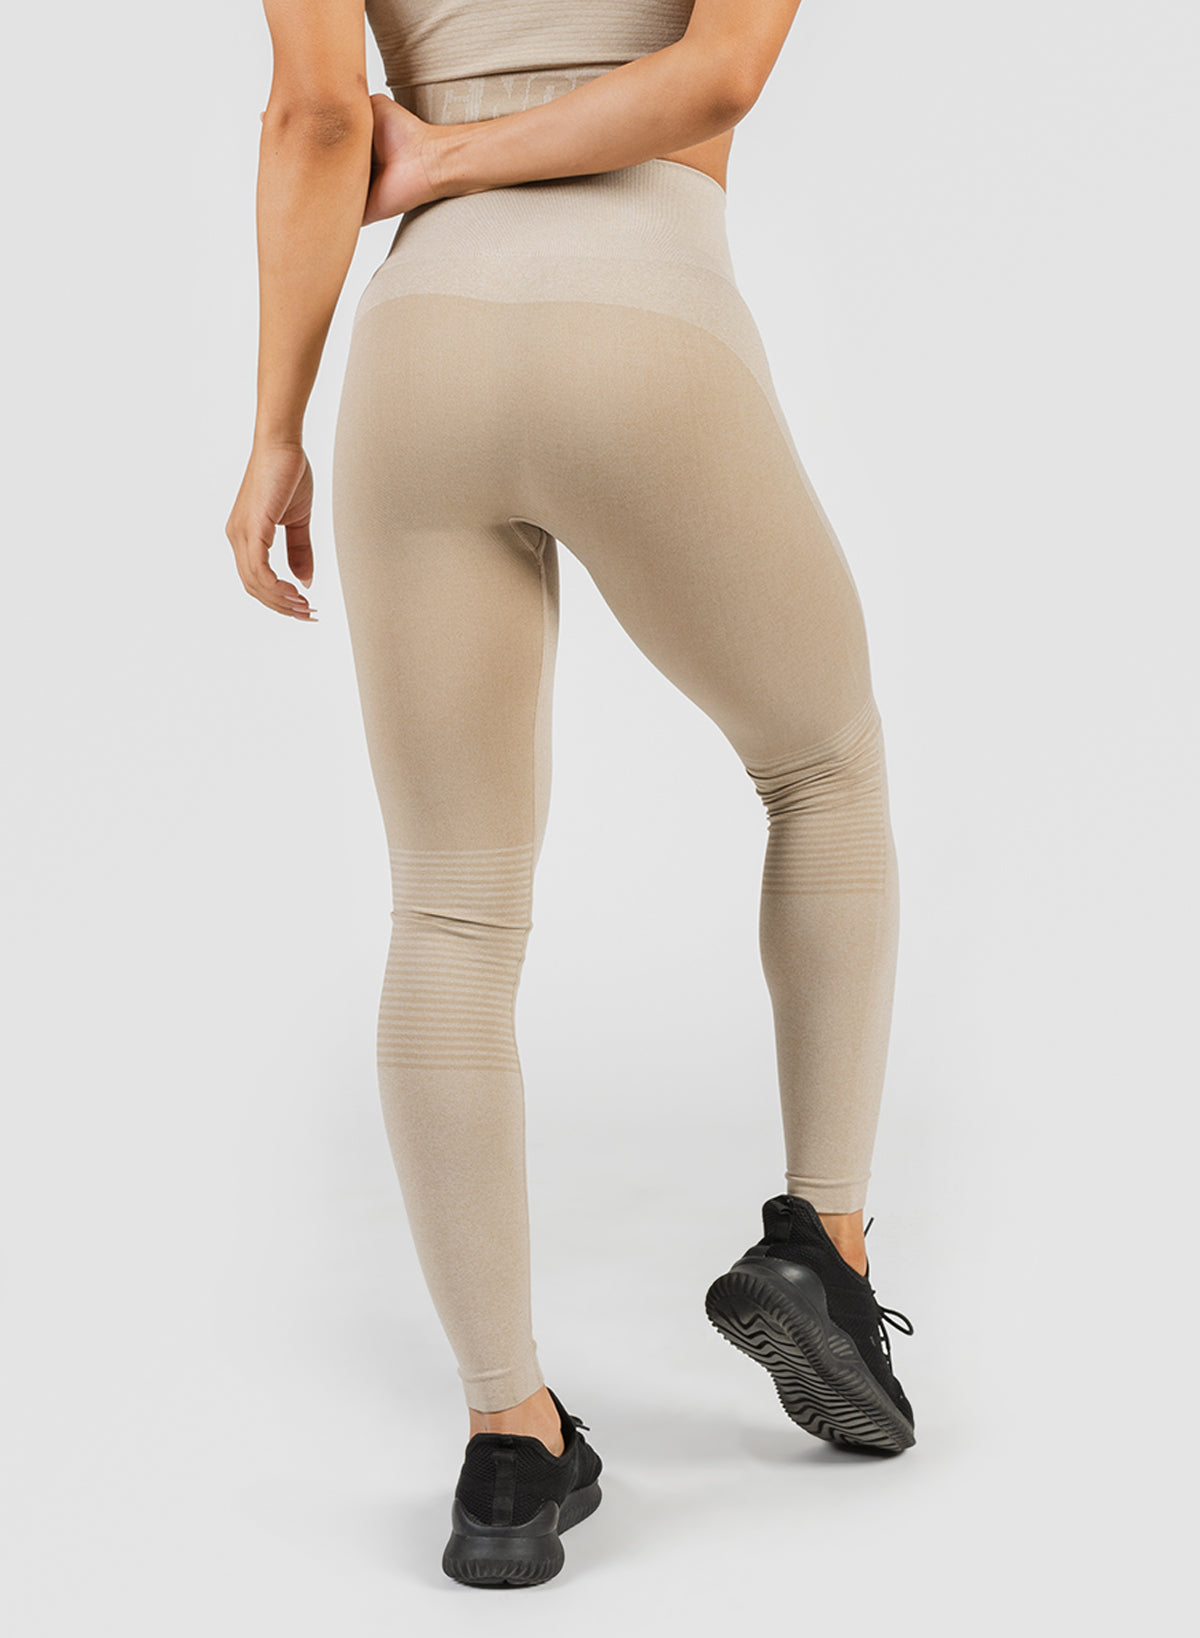 SEAMLESS TIGHTS - SAND